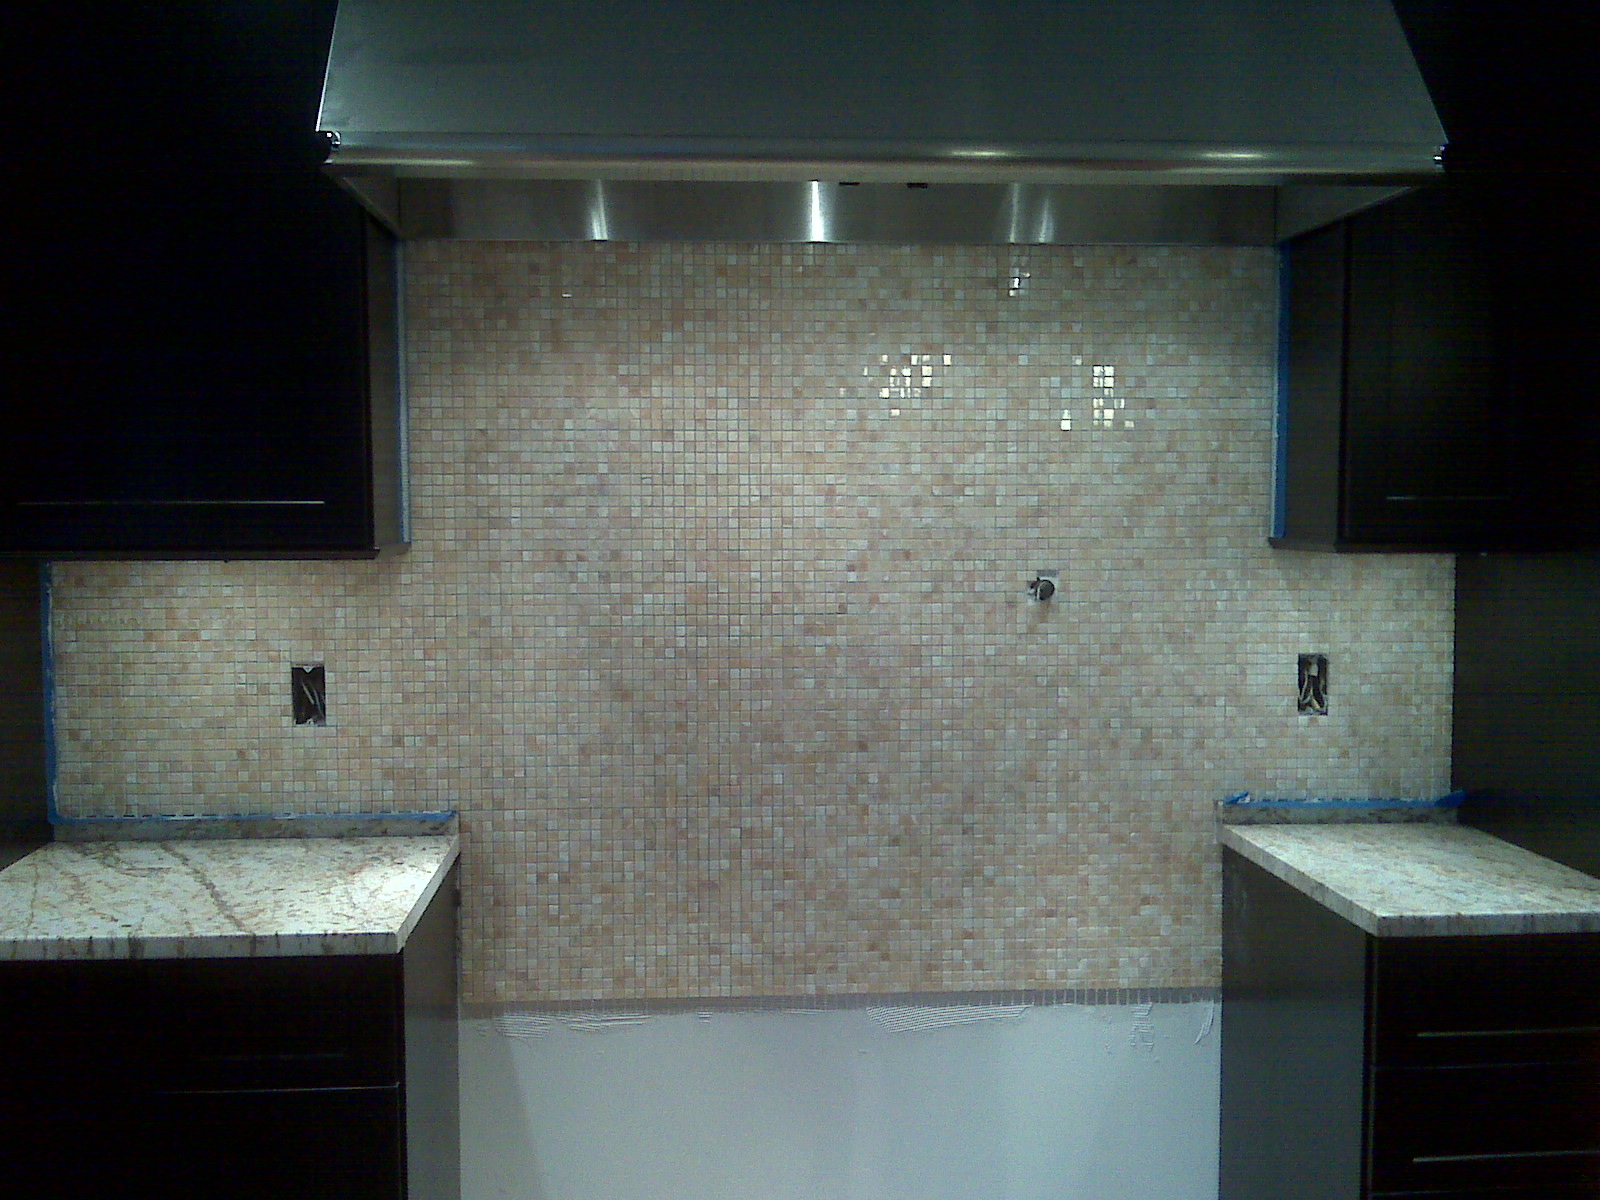 How to Put Up Backsplash